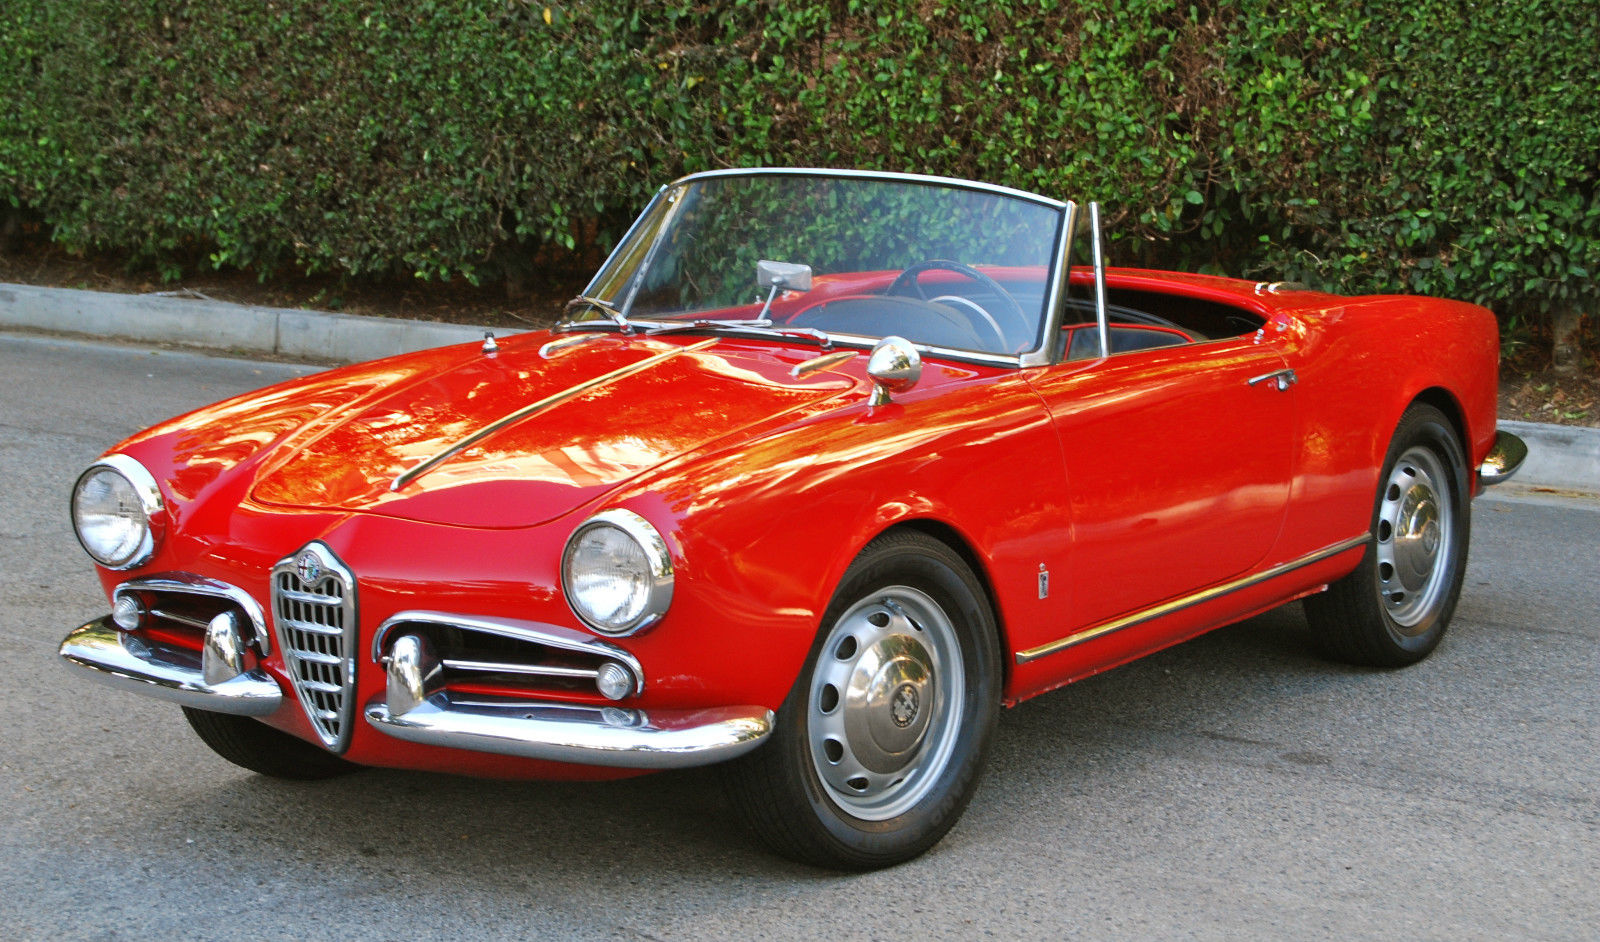 1961 alfa romeo giulietta spider 1600cc 5 speed absolute rust free restored classic alfa. Black Bedroom Furniture Sets. Home Design Ideas